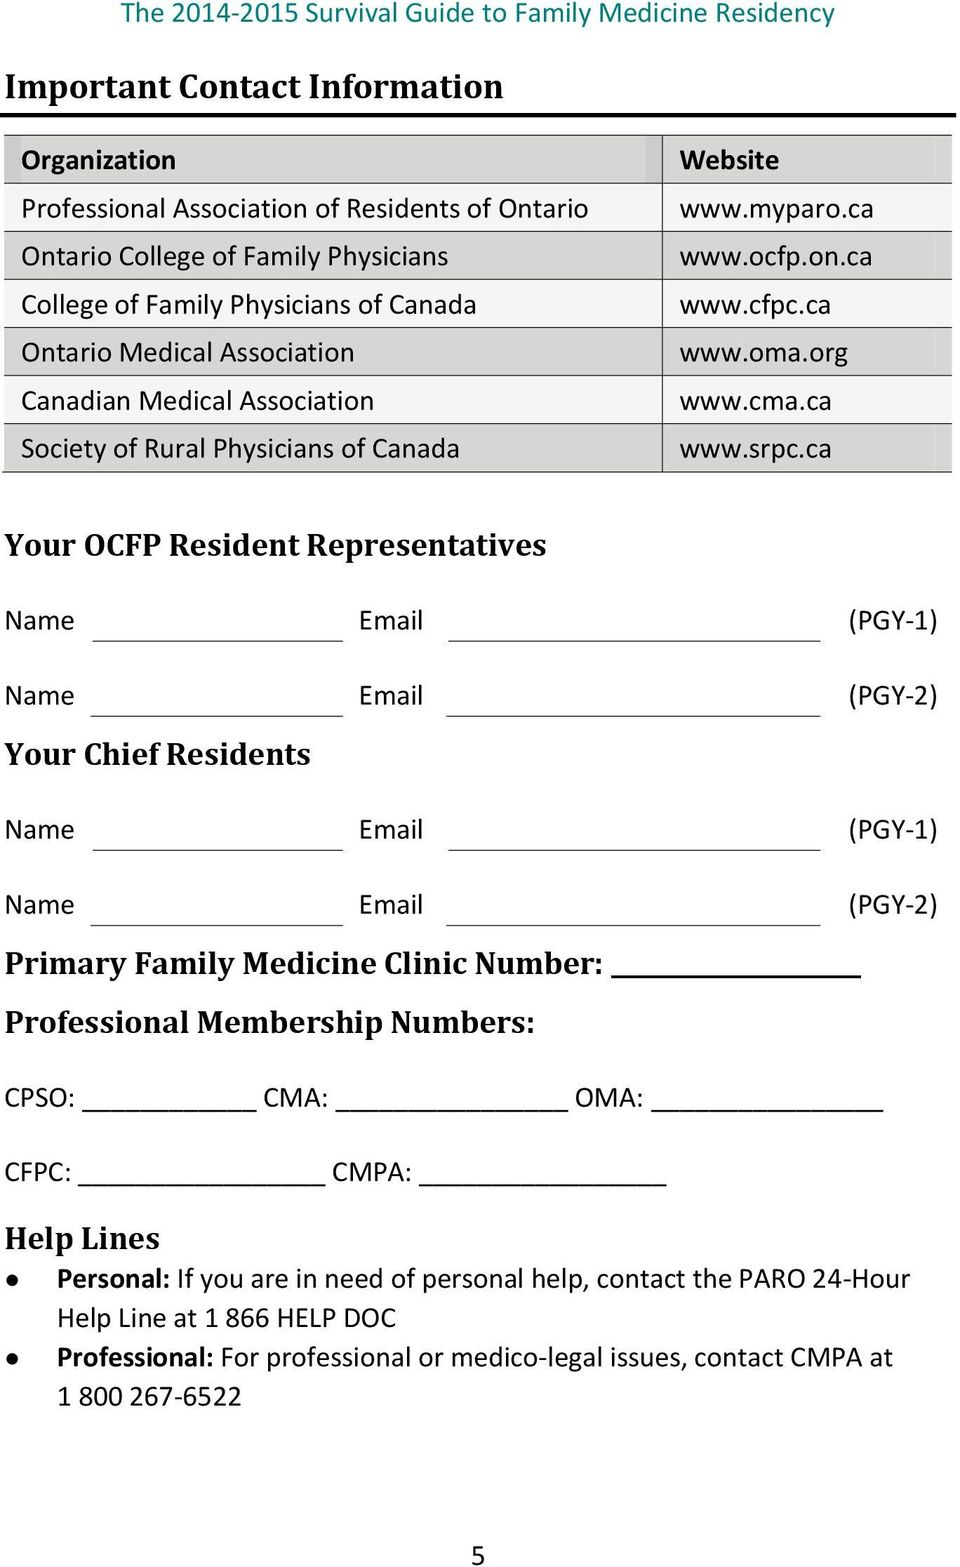 ca Your OCFP Resident Representatives Name Email (PGY-1) Name Email (PGY-2) Your Chief Residents Name Email (PGY-1) Name Email (PGY-2) Primary Family Medicine Clinic Number: Professional